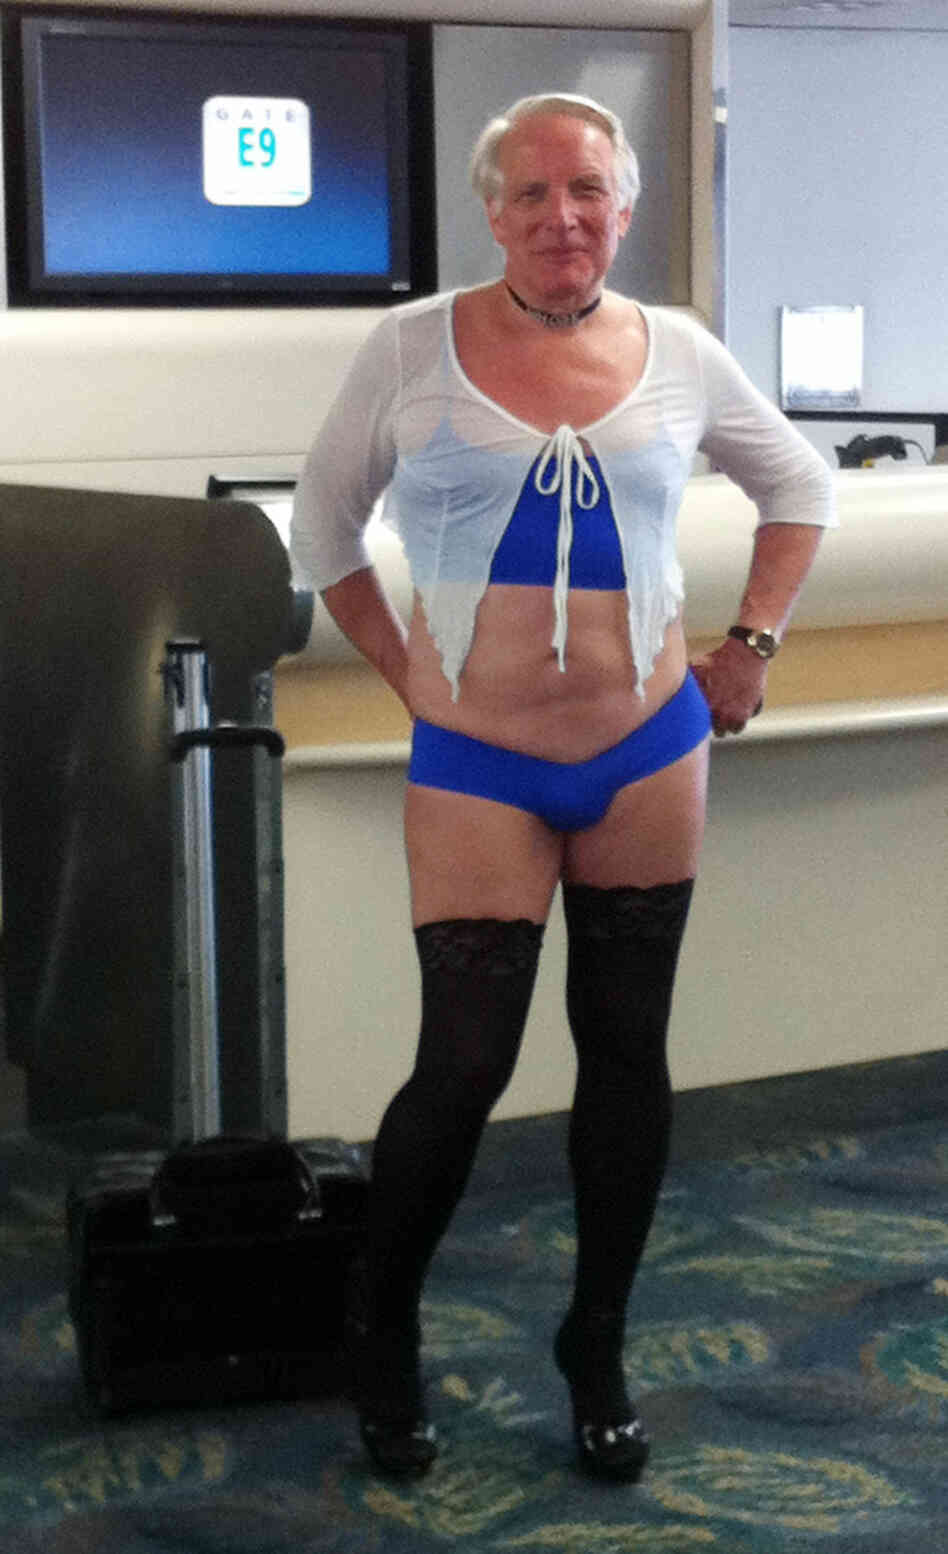 This is a June 9, 2011, photo provided by airline passenger Jill Tarlow showing an unnamed passenger scantily dressed and taken at the airport in Fort Lauderdale, Fla.